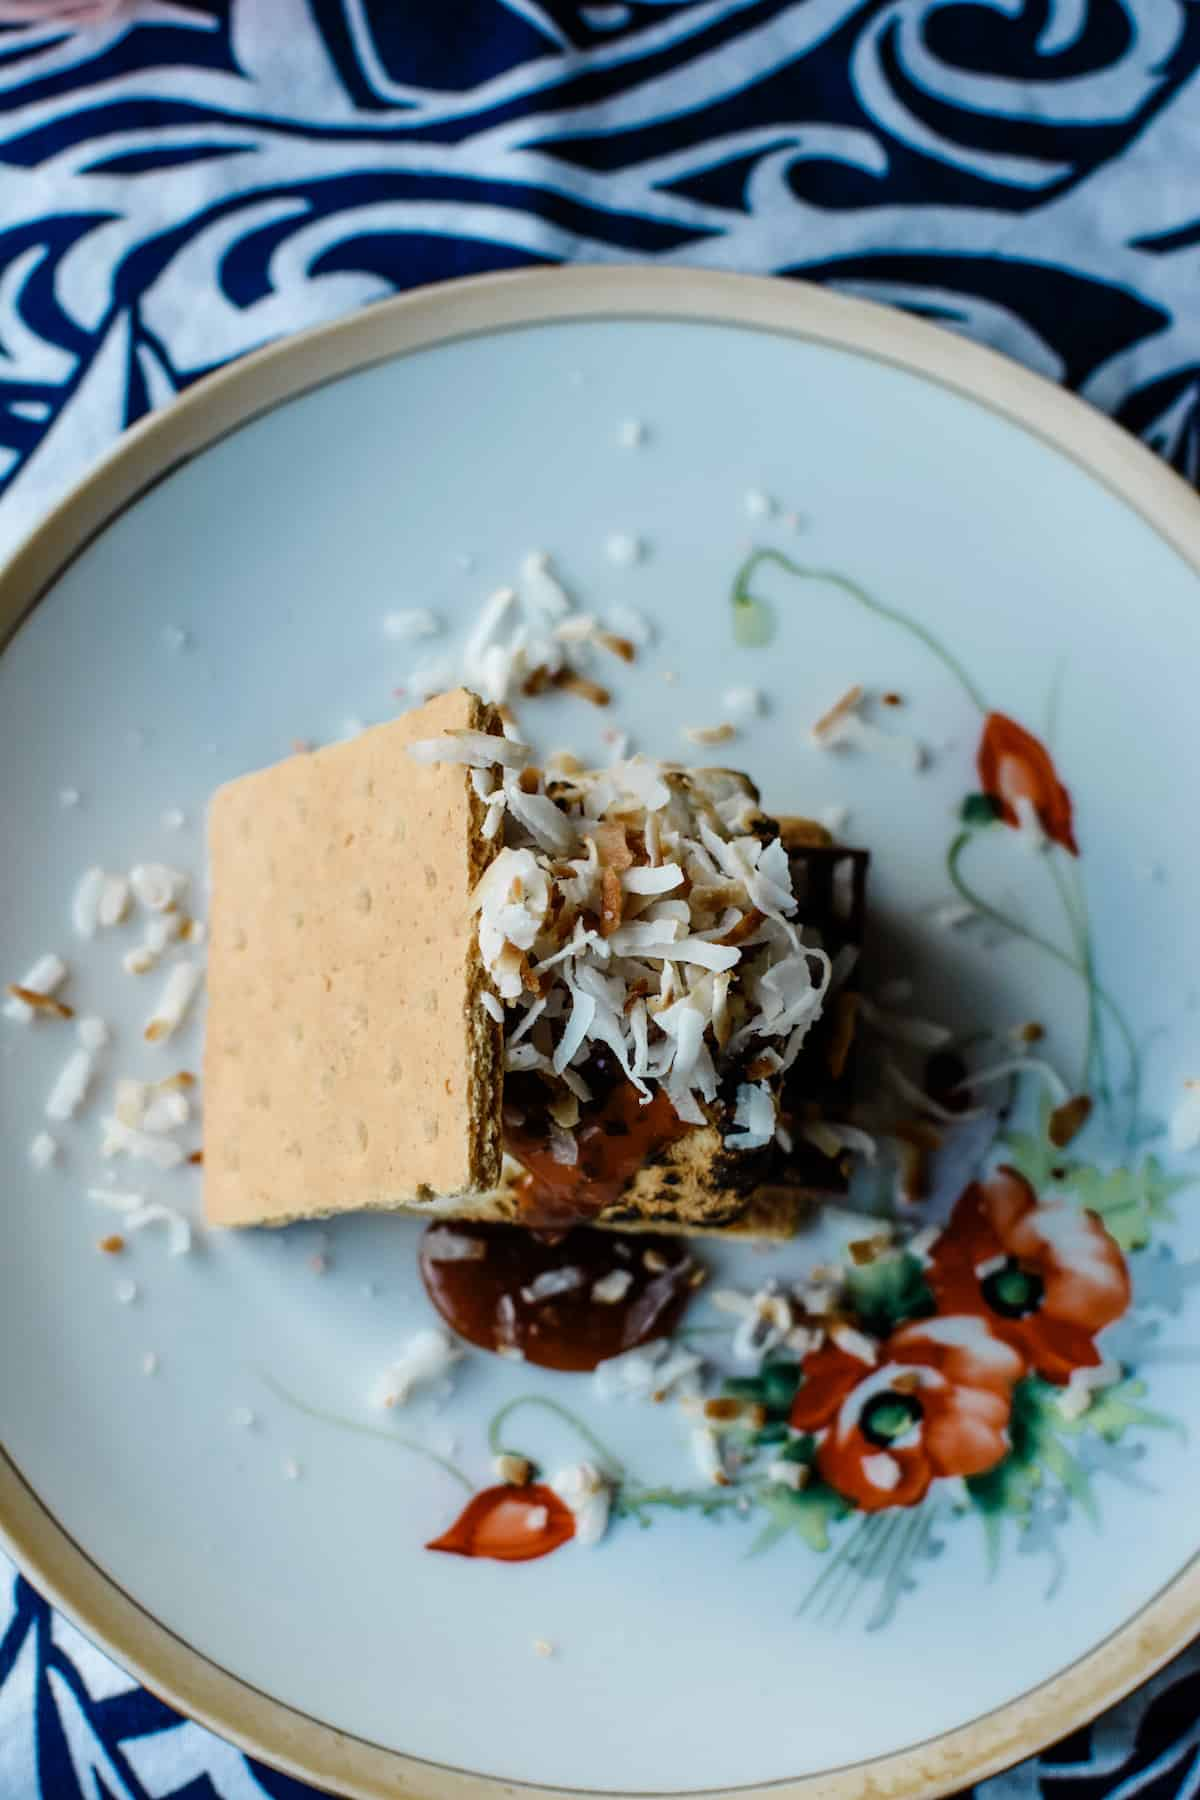 A s'mores dessert topped with toasted coconut sitting on a white plate with red flowers on it.